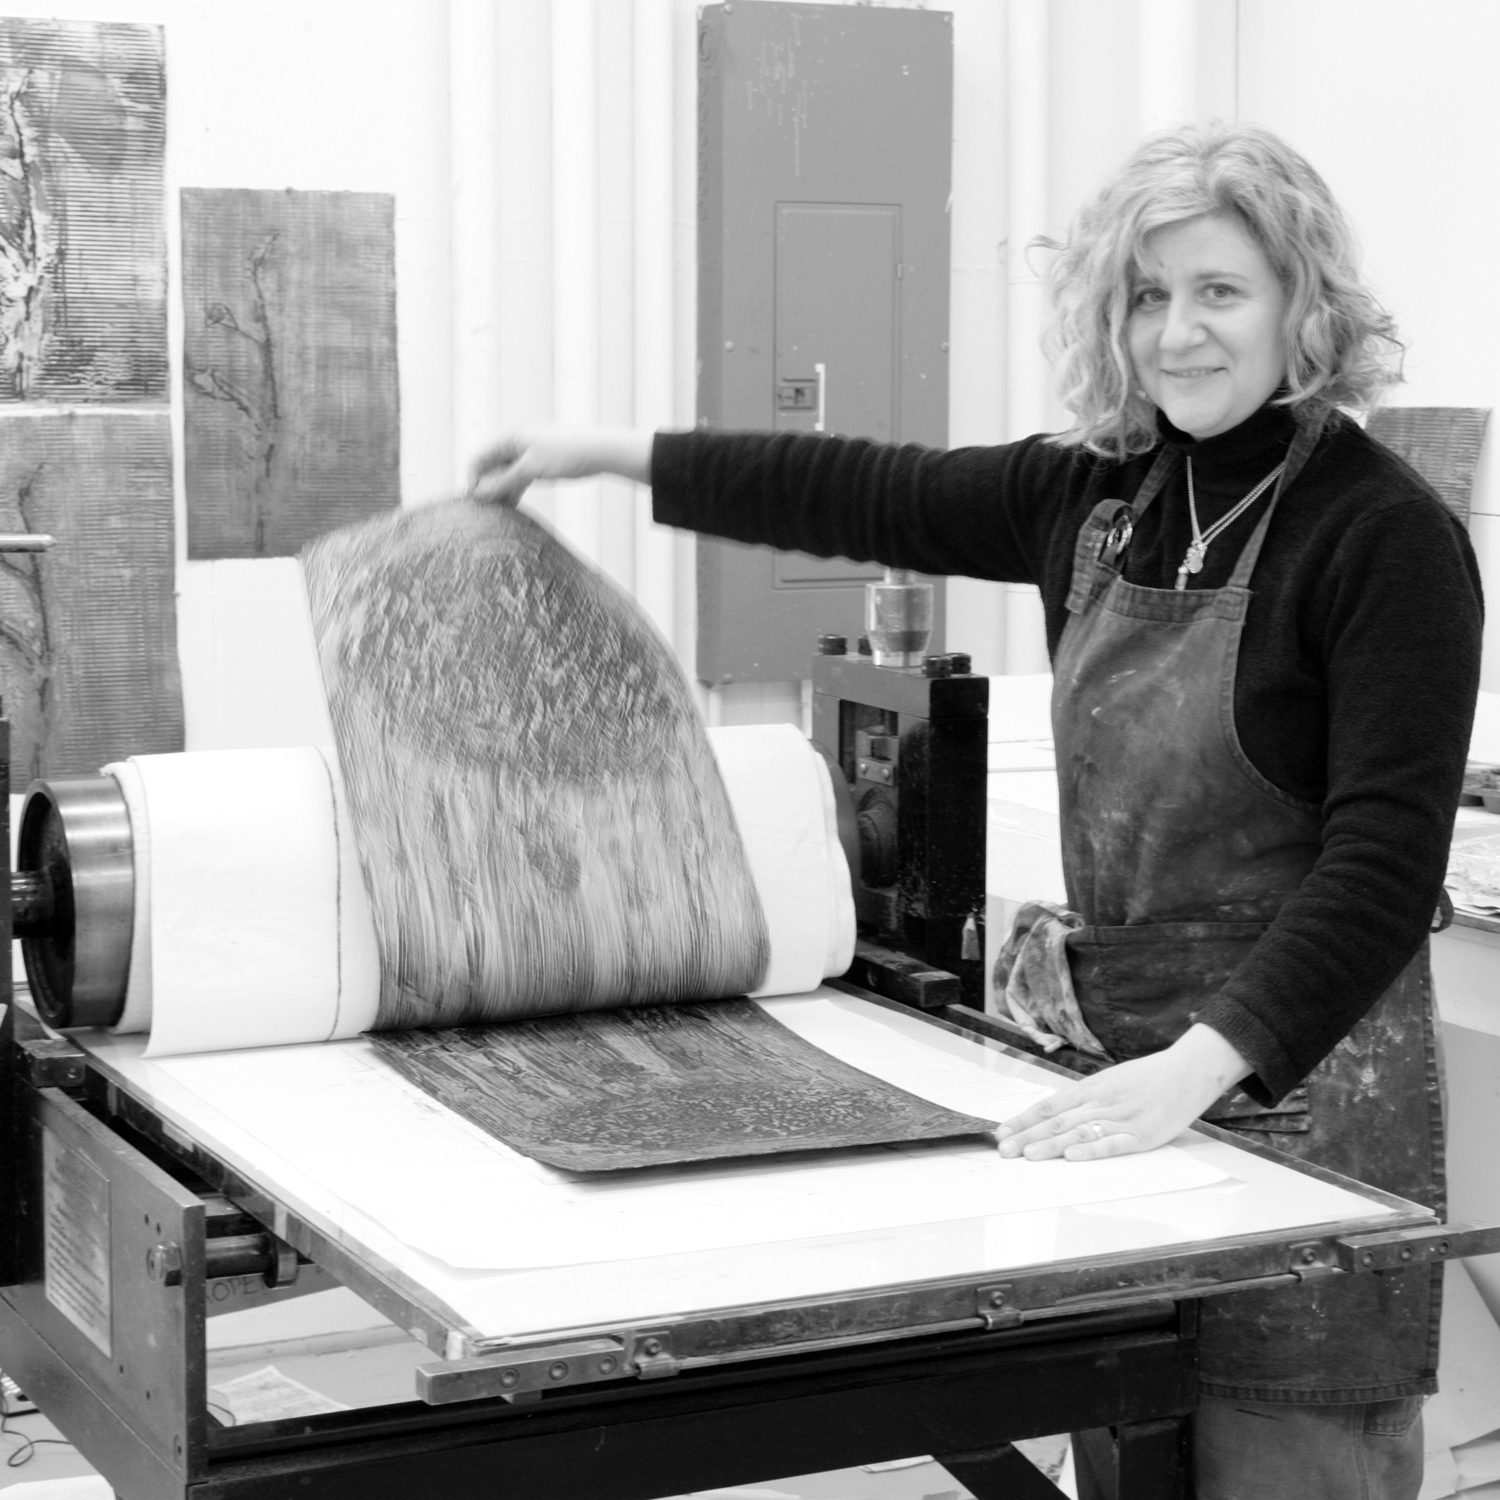 Dina Petrillo - Dina Petrillo is a sculptor, printmaker, and designer, She has been exhibiting and teaching in Mid-Coast Maine since she moved here from New York City in 2000. While teaching sculpture and printmaking at the Hutchinson Center, she opened the Post Office Studio Workshop in downtown Belfast for her artistic projects. Now a production print studio, the PO workshop has been the home of Belfast Bay Shade Company since 2012 where she designs and makes an extensive catalog of hand-printed botanical lampshades and home decor.